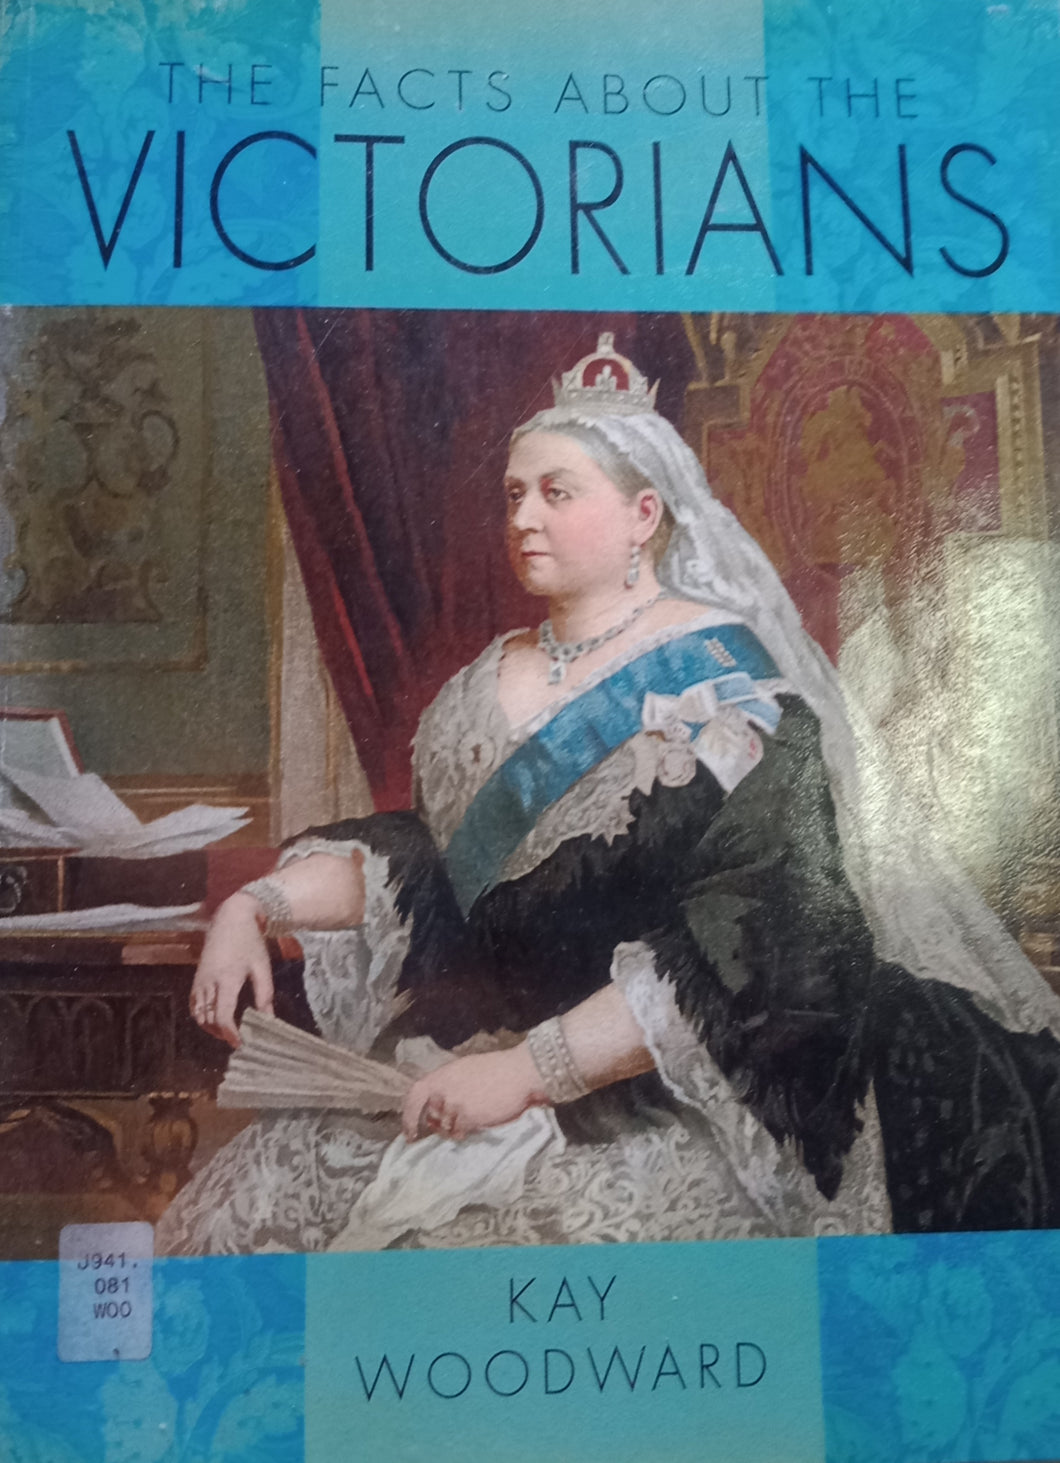 The Facts About the Victorians by Kay Woodward